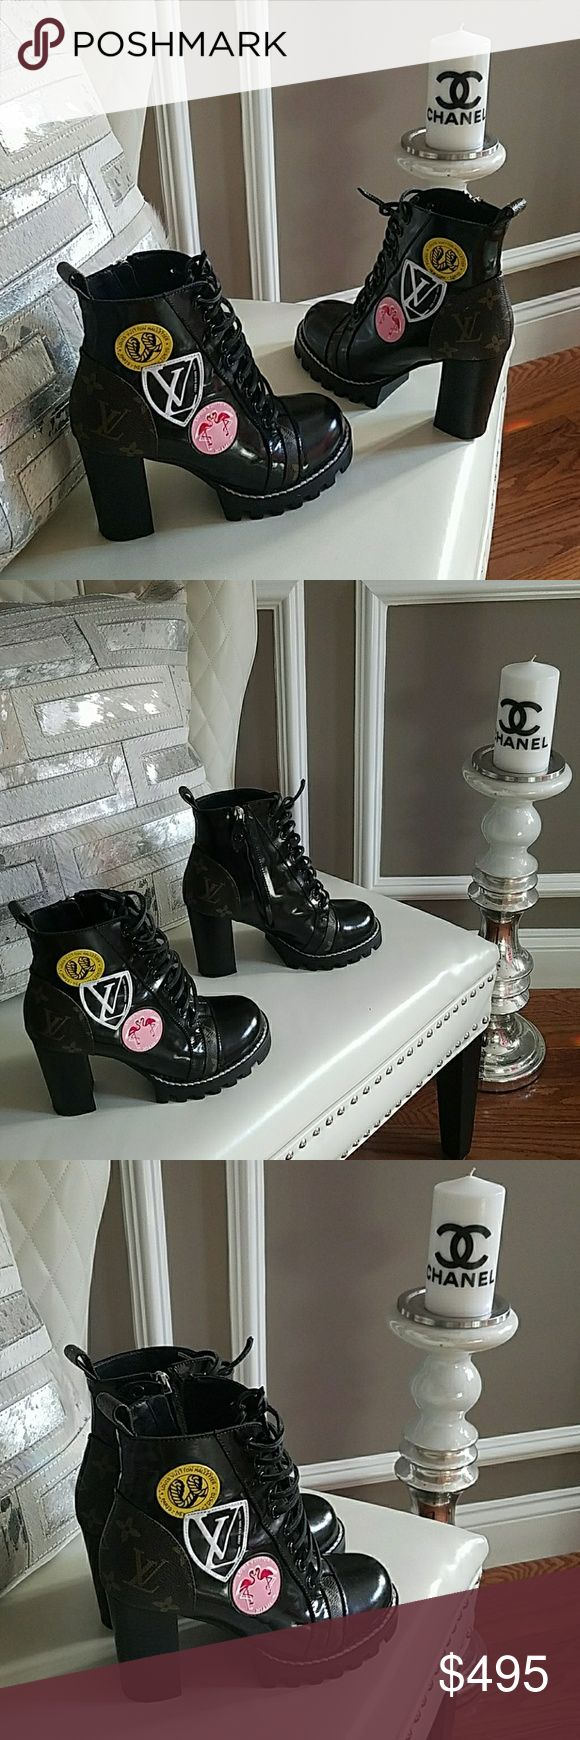 LV Louis Vuitton Patched booties boots Monogram 39 Pre owned in mint condition LV Louis Vuitton Patched booties boots  European size 39 US size 8 Monogram  Retail price $1,300 Asking $495 firm Made in Italy As is no box or dustbag my sister received as a gift. Louis Vuitton Shoes Ankle Boots & Booties